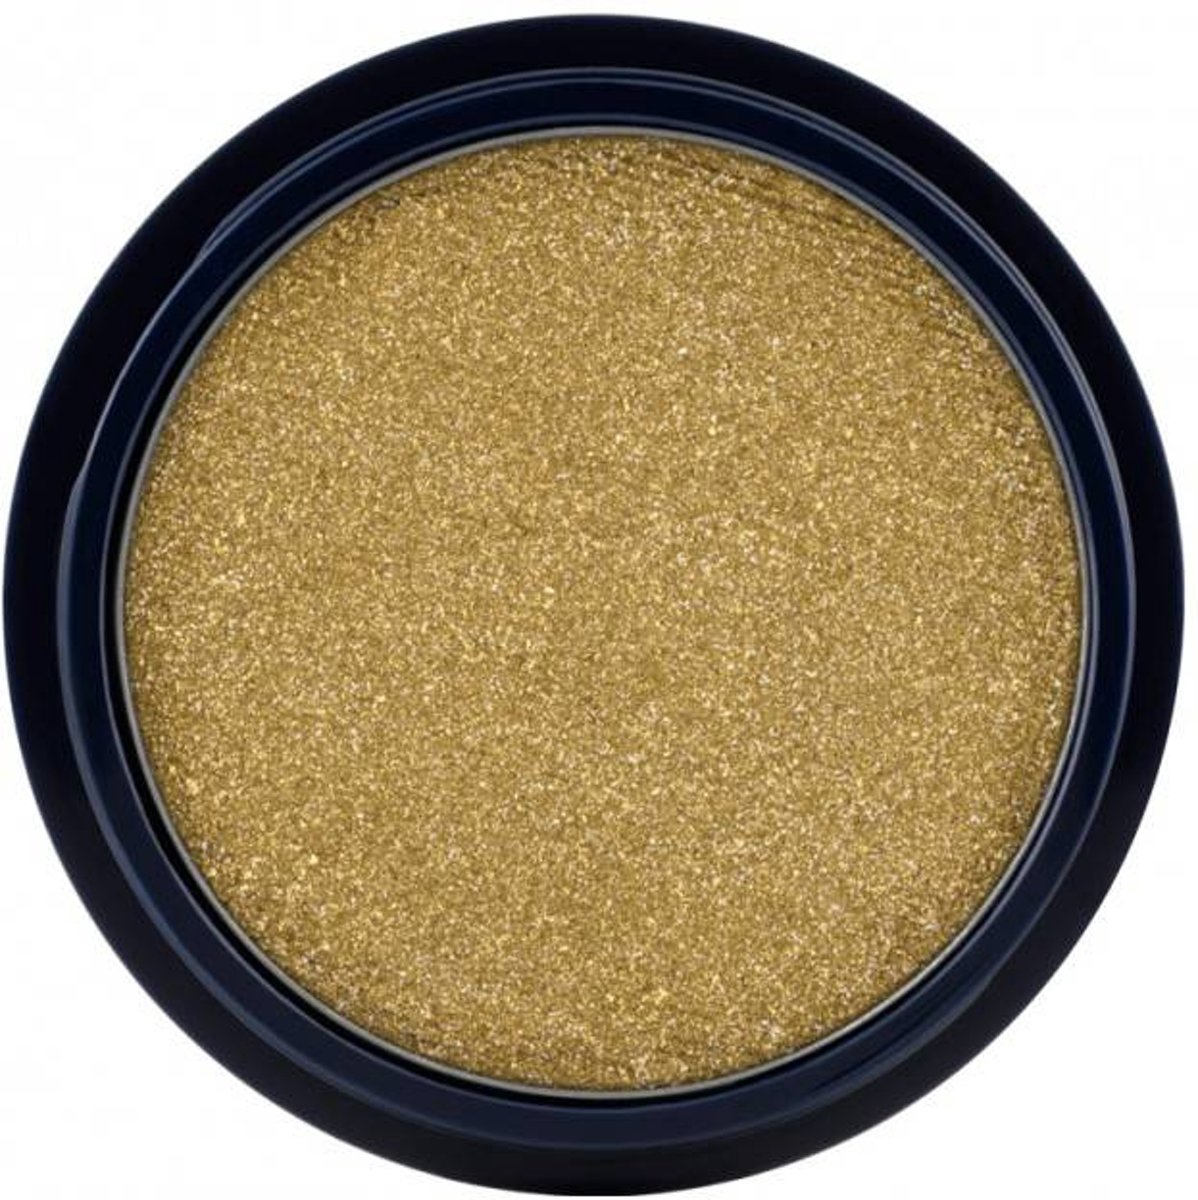 Max Factor Oogschaduw - Wild Shadow Pots 020 Golden Amazon